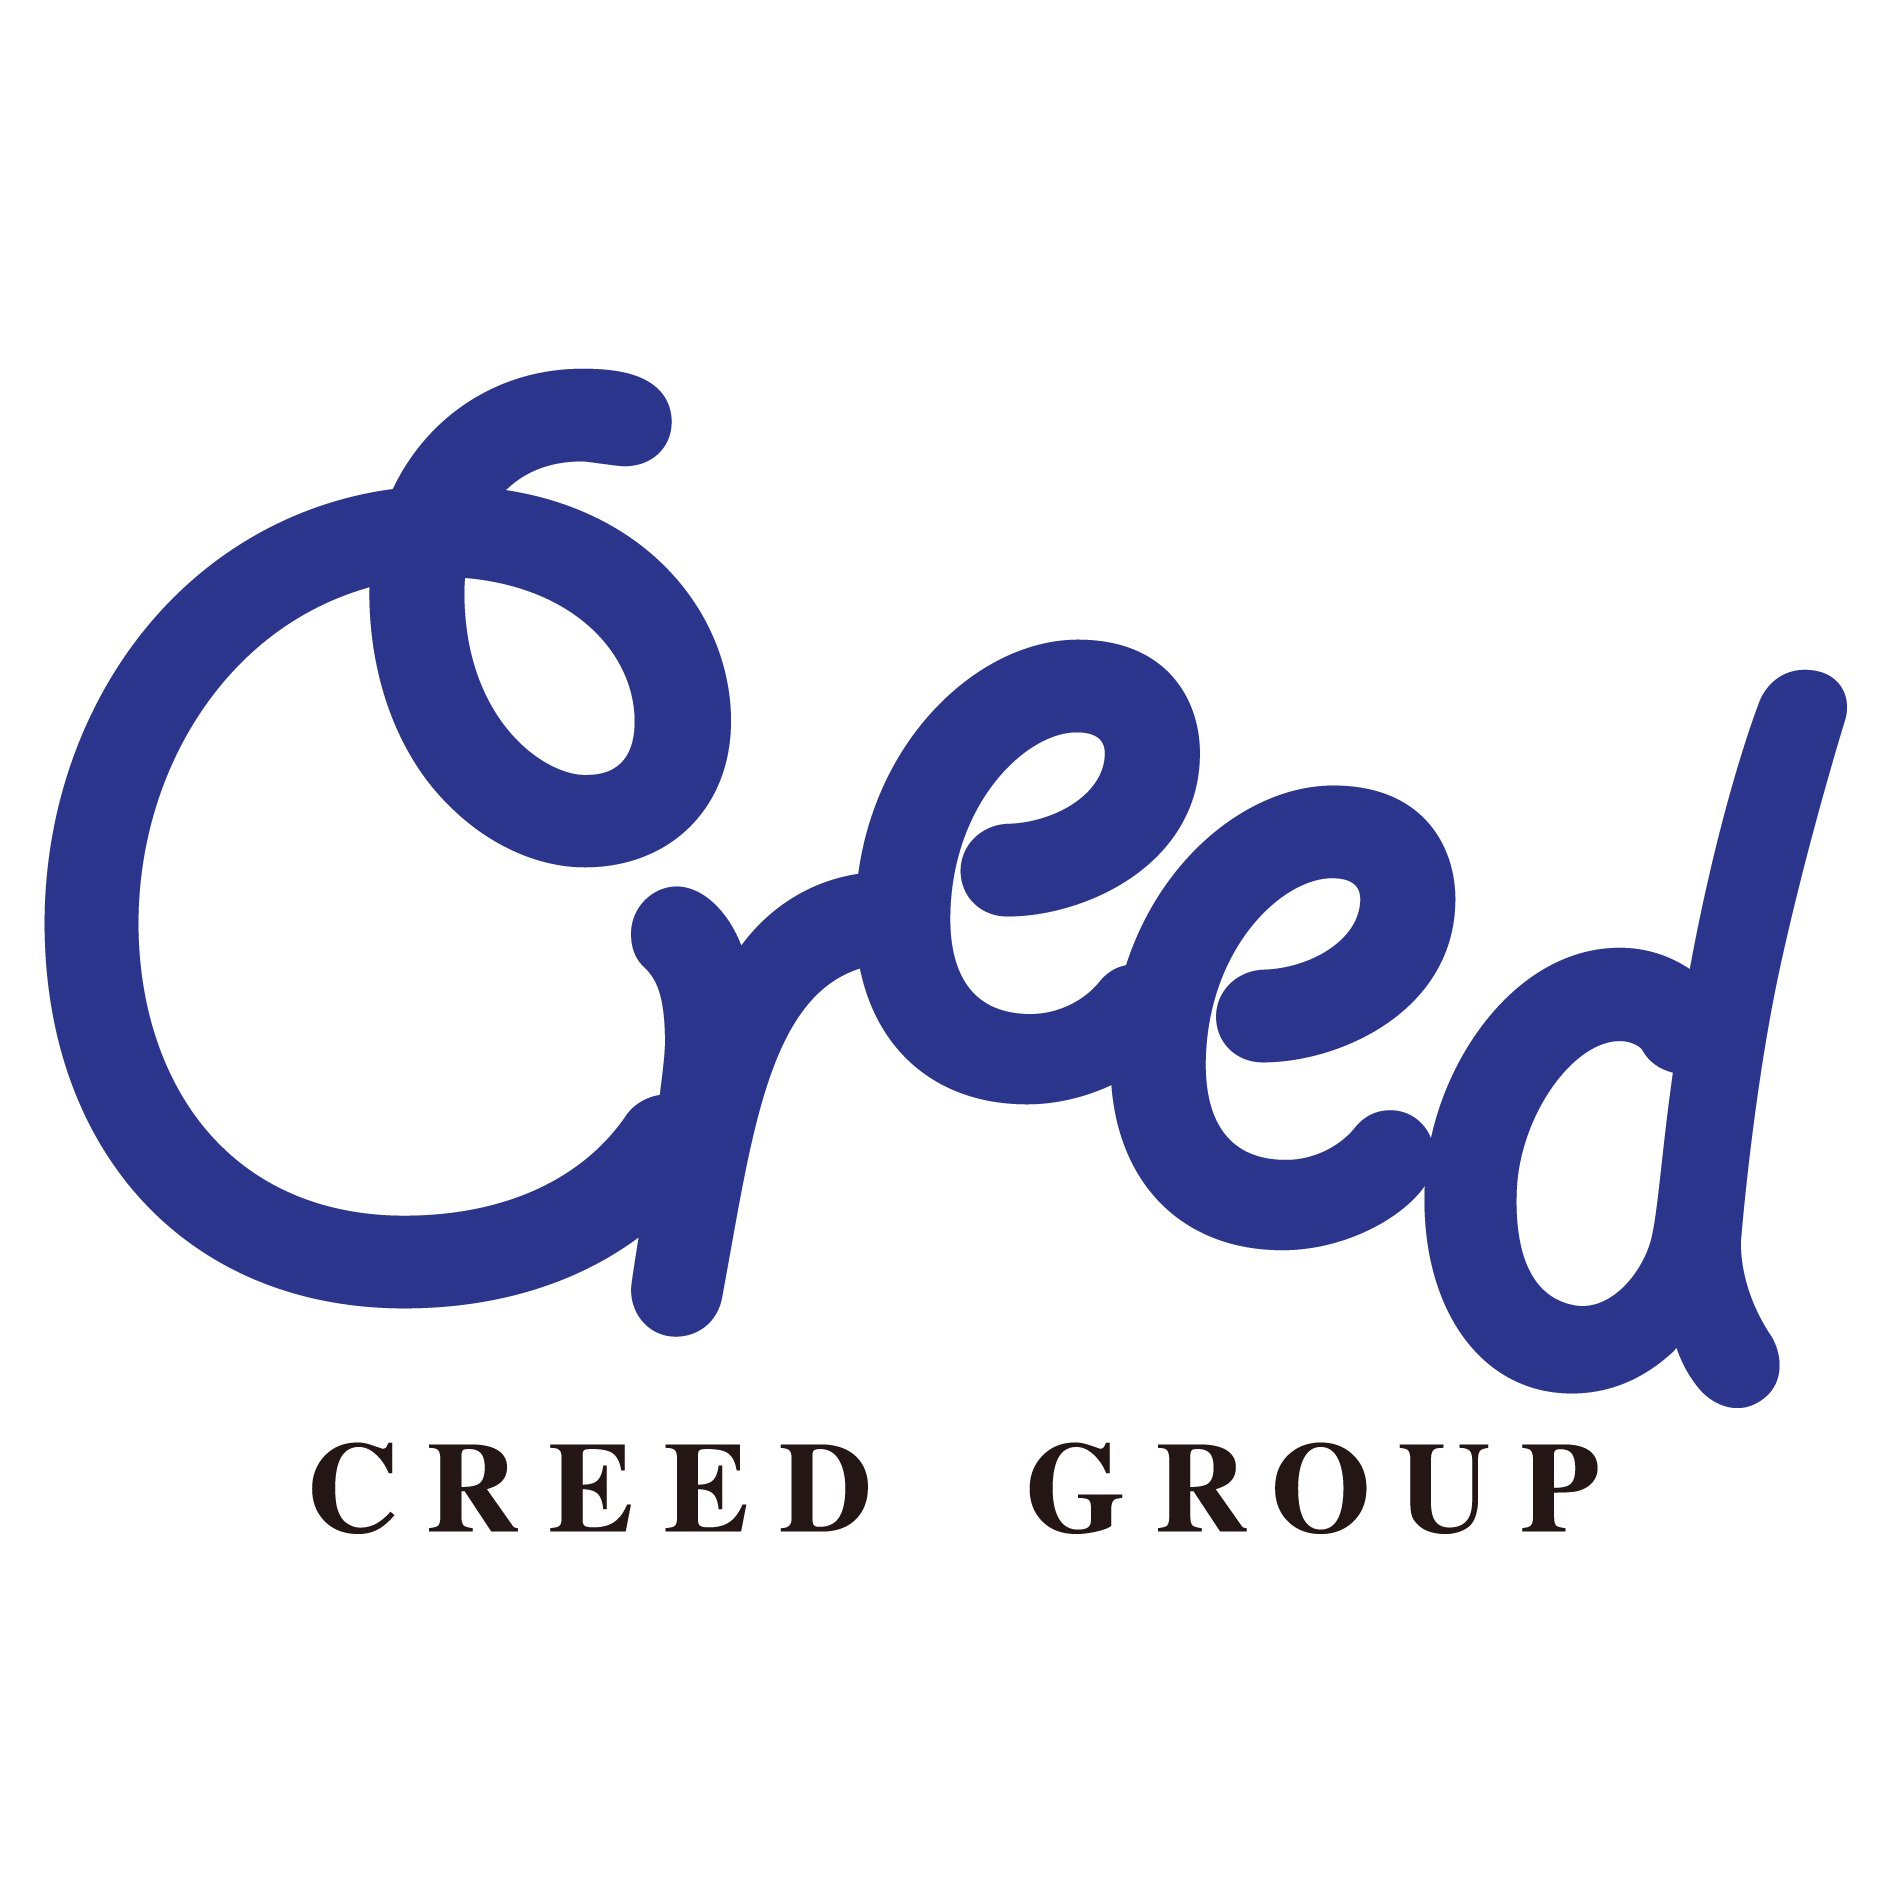 Greed Group